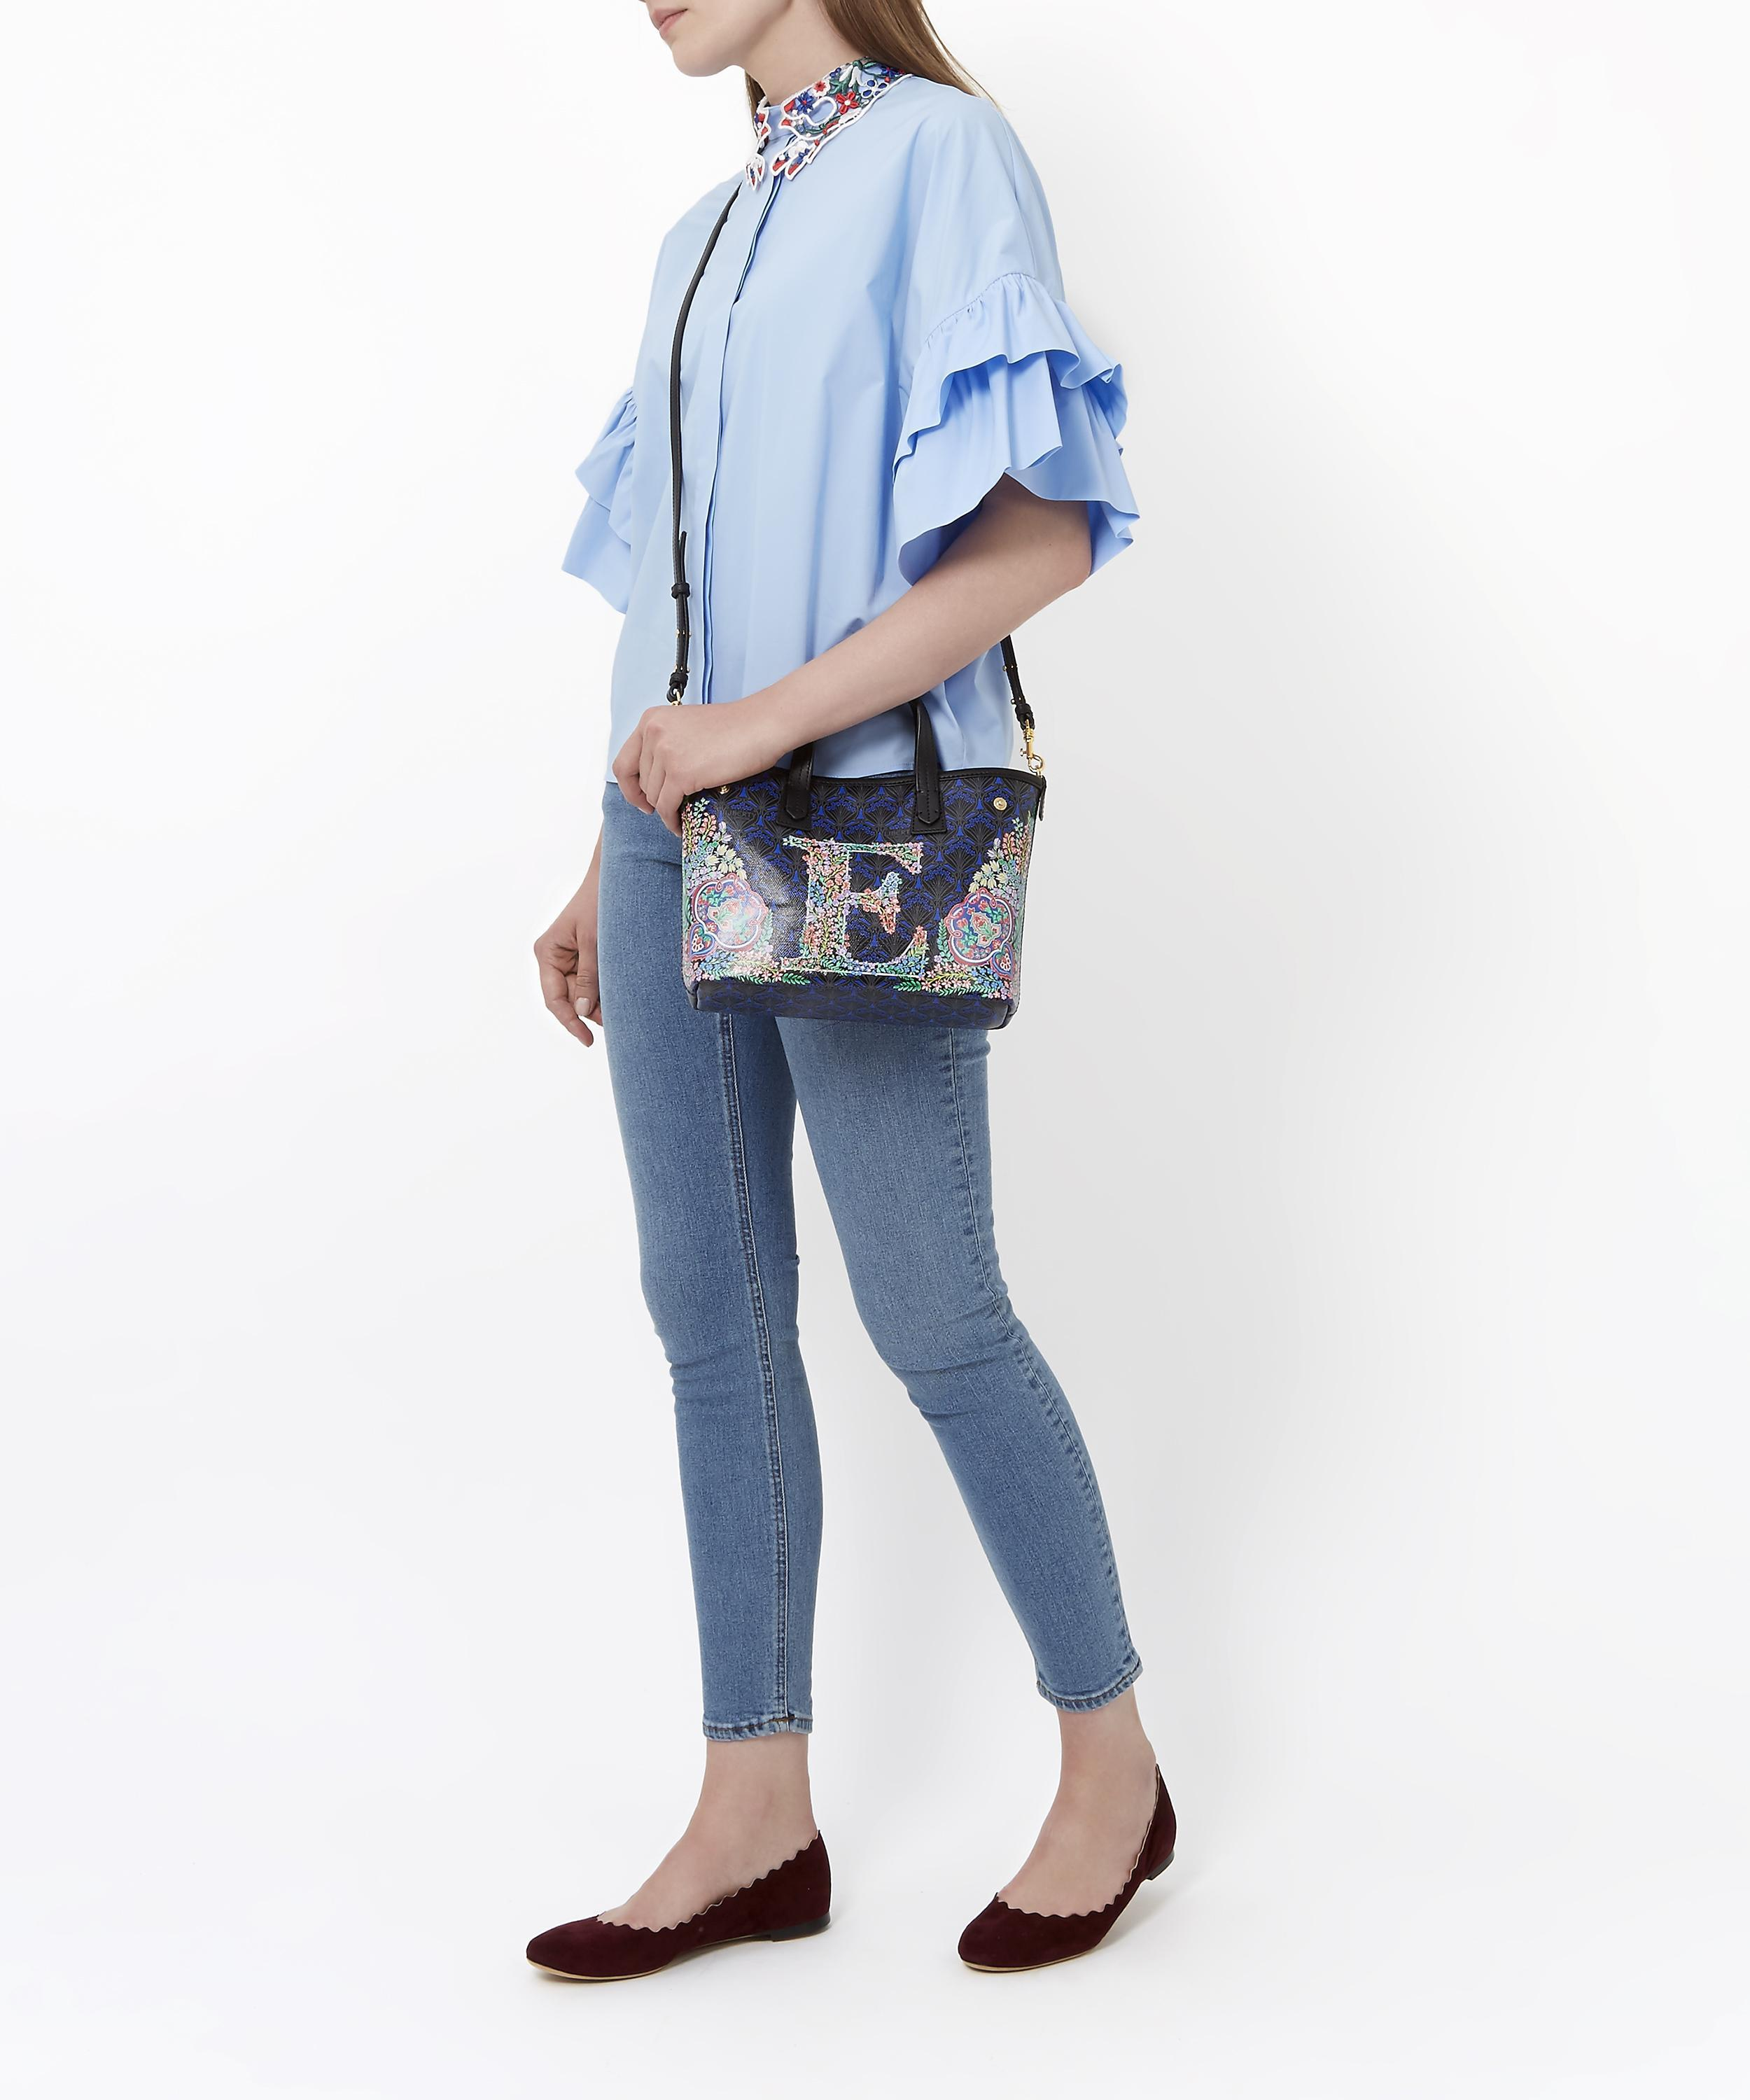 Liberty Canvas Mini Marlborough Tote Bag In U Print in Blue